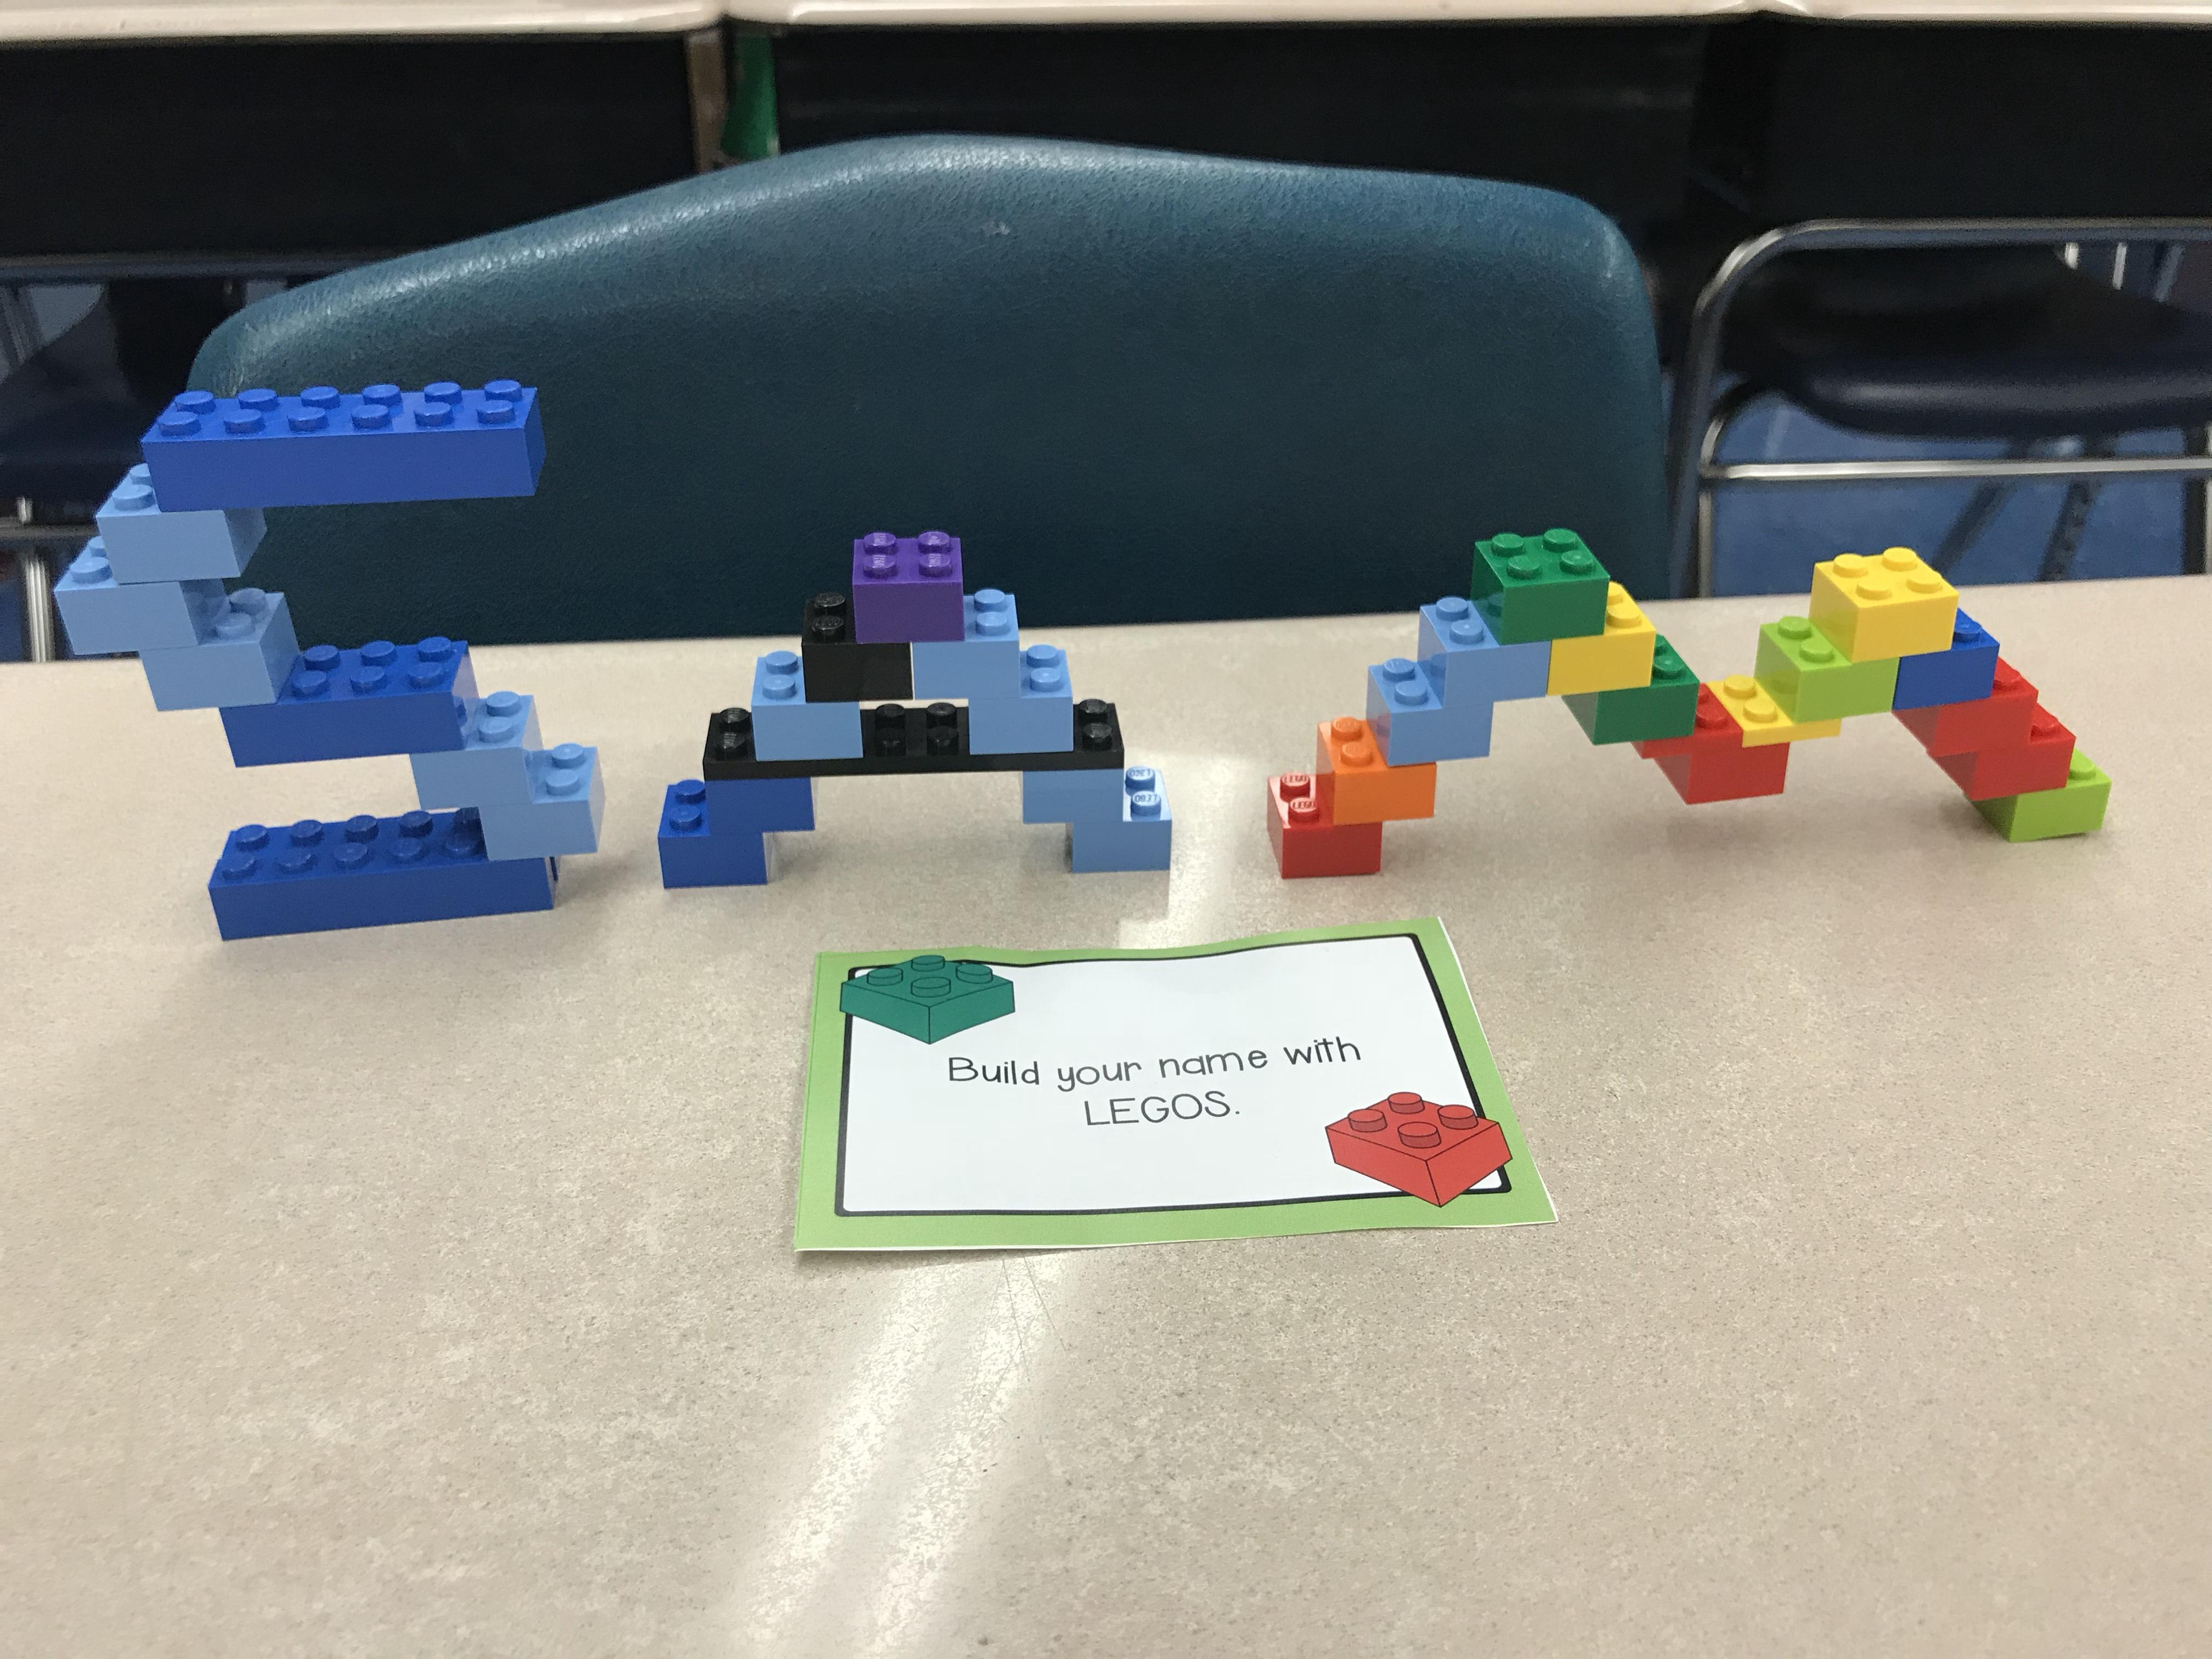 build you name in legos activity